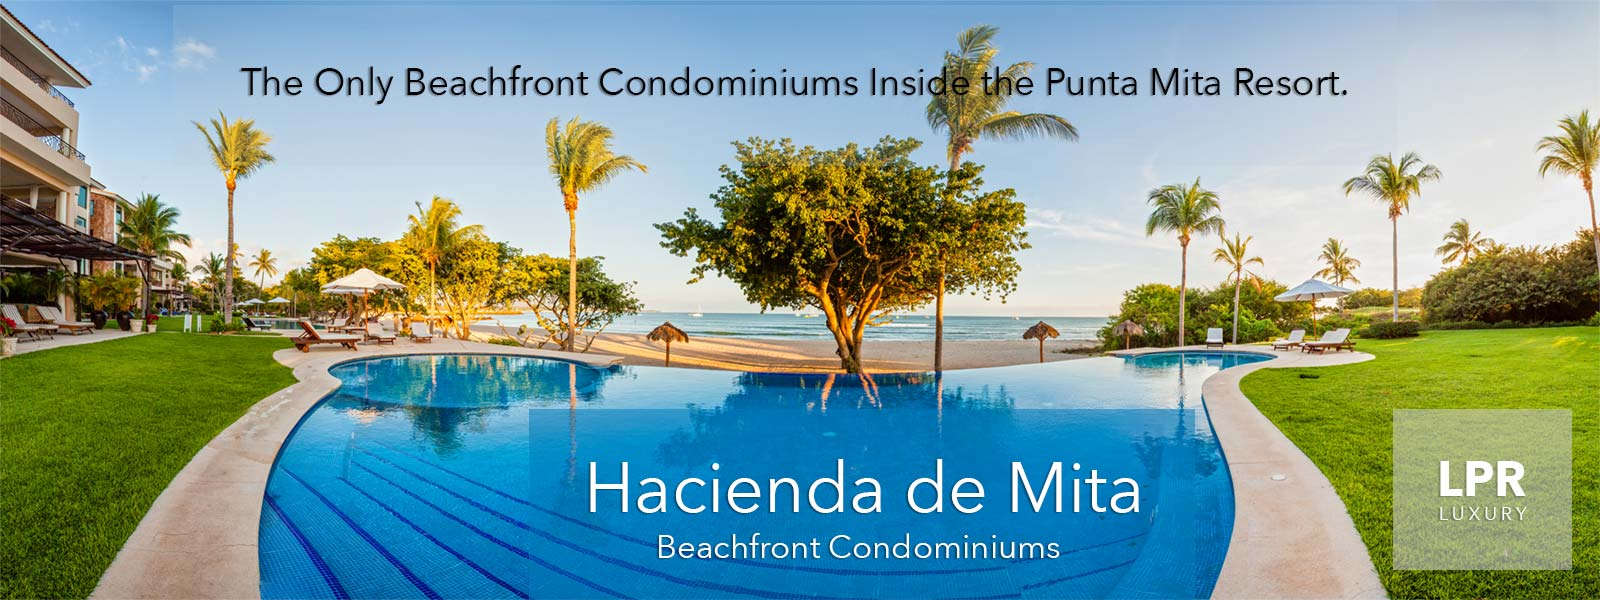 Hacienda de Mita Luxury Condos at the Exlusive Punta Mita Resort, Mexico